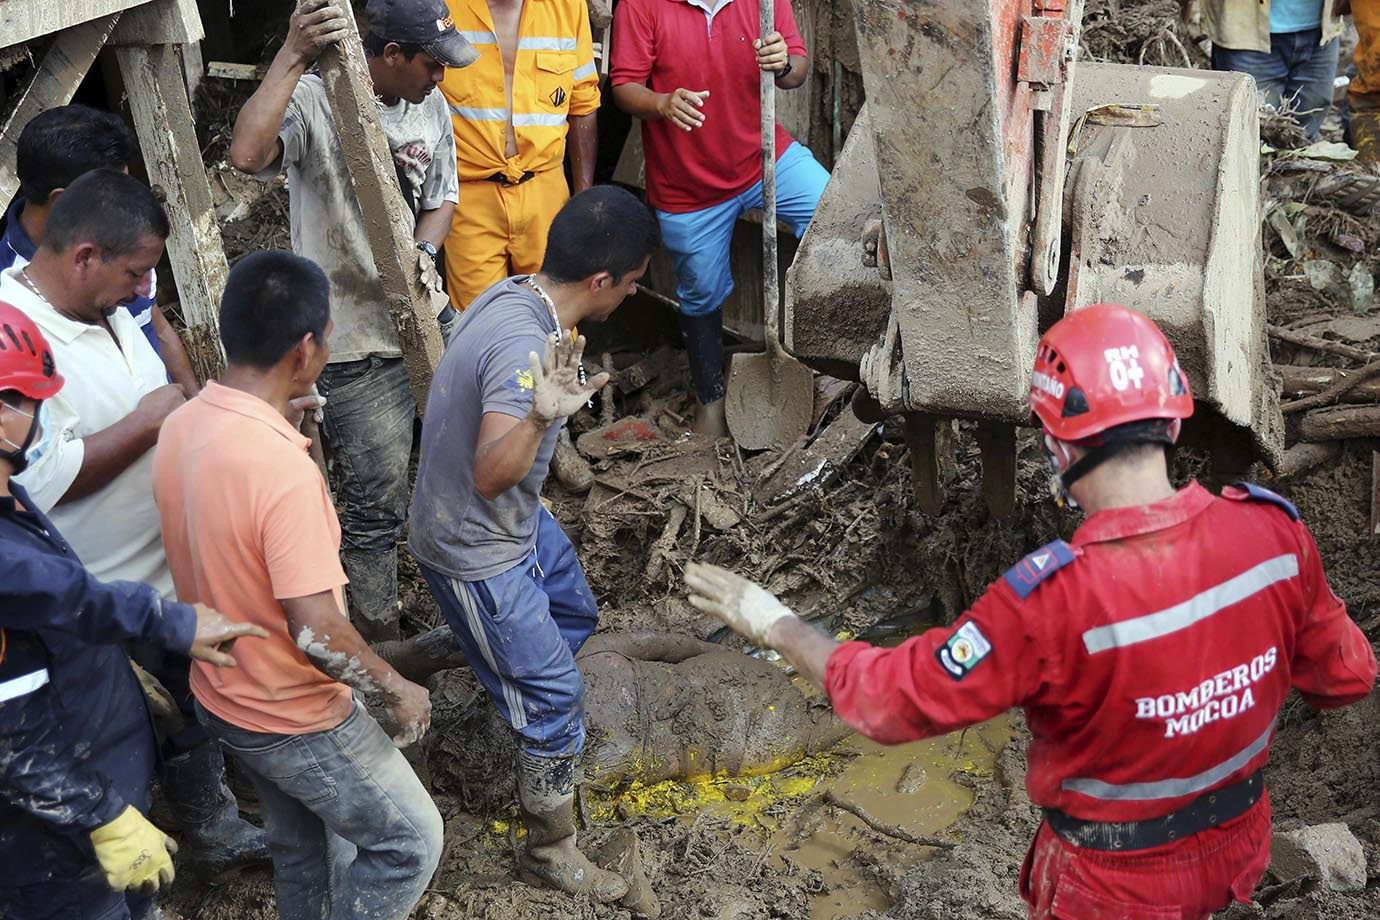 Colombia mudslides: Death toll soars to 250, rescue ops continue